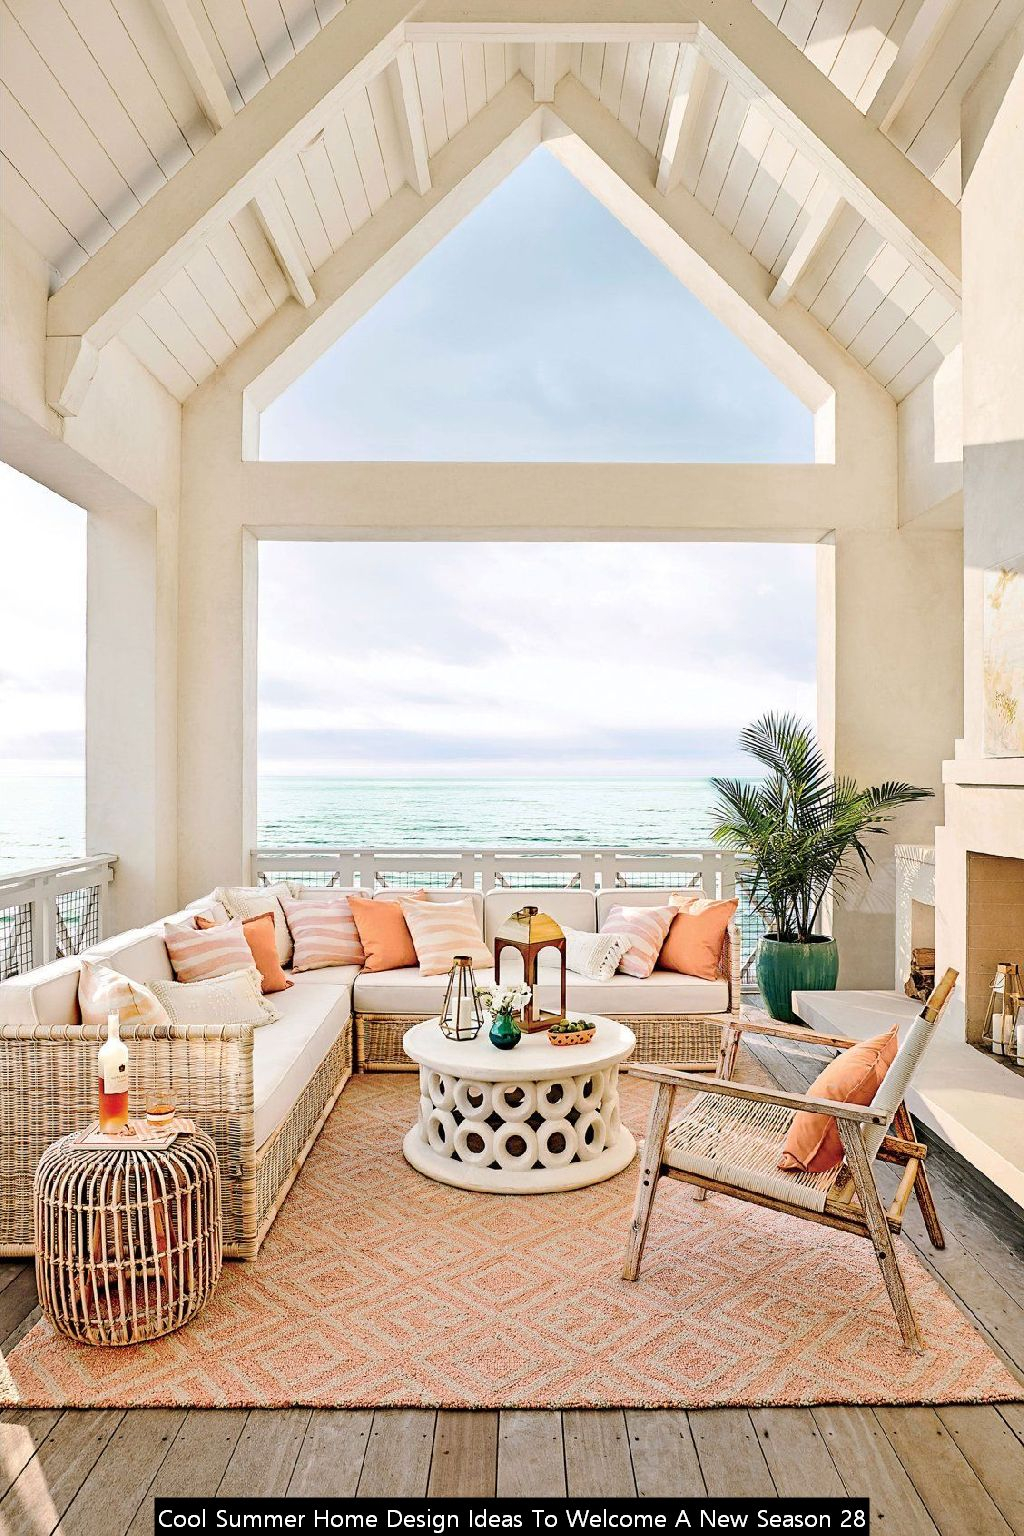 Cool Summer Home Design Ideas To Welcome A New Season 28